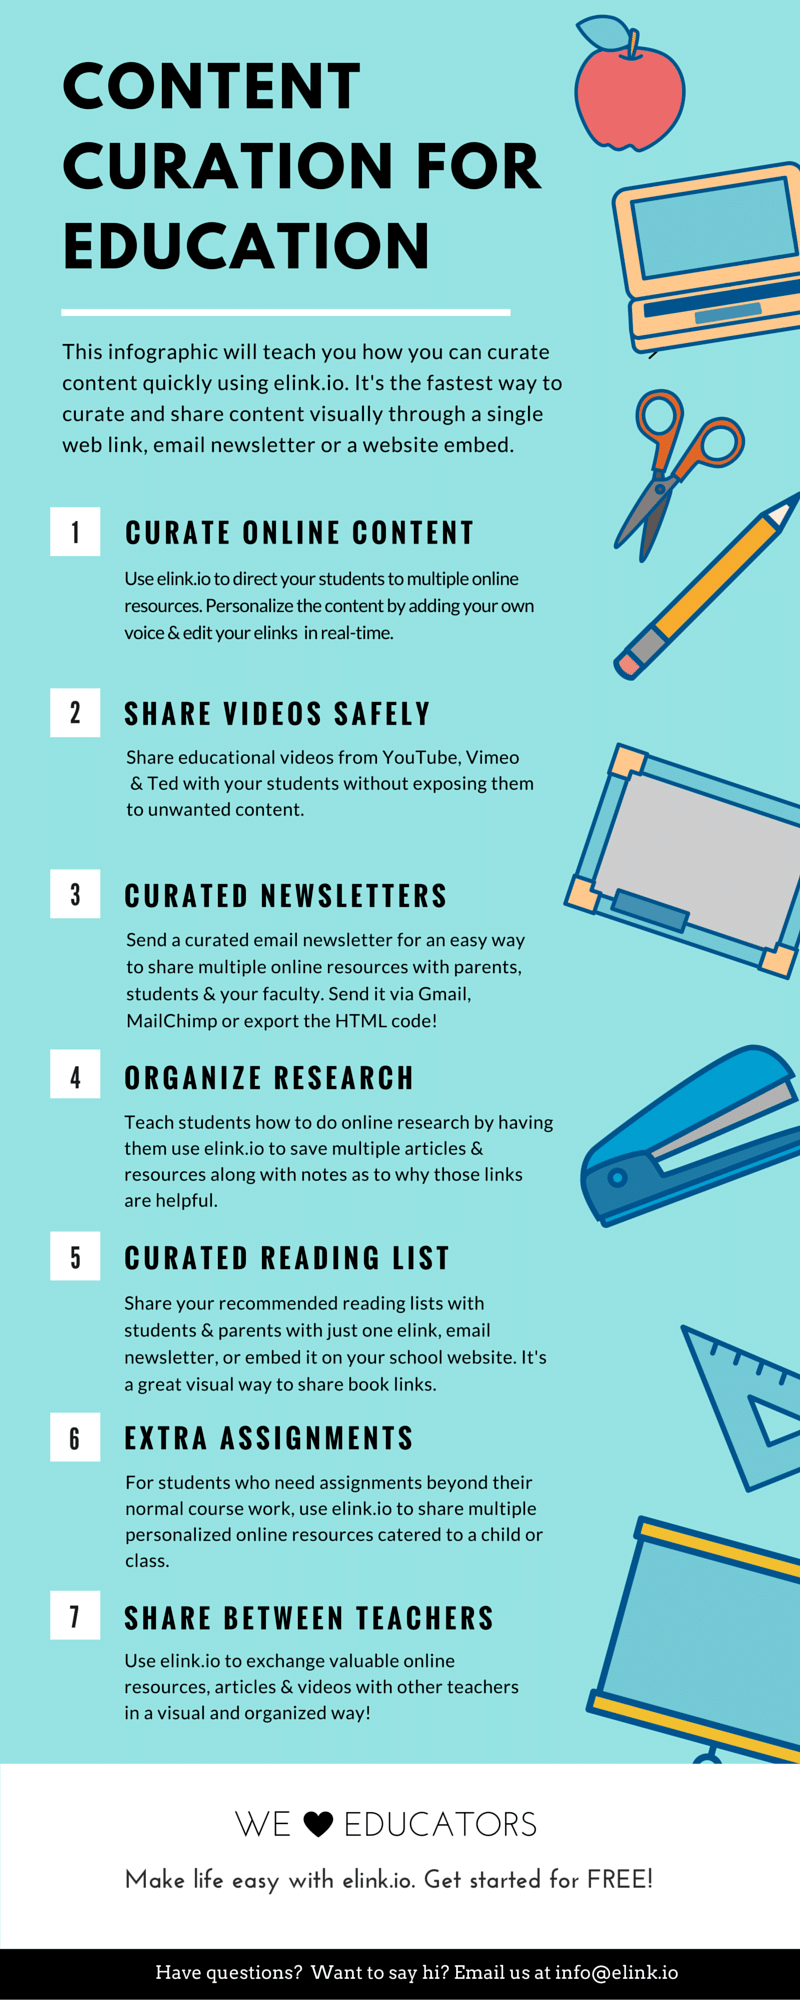 Content Curation for Education Infographic